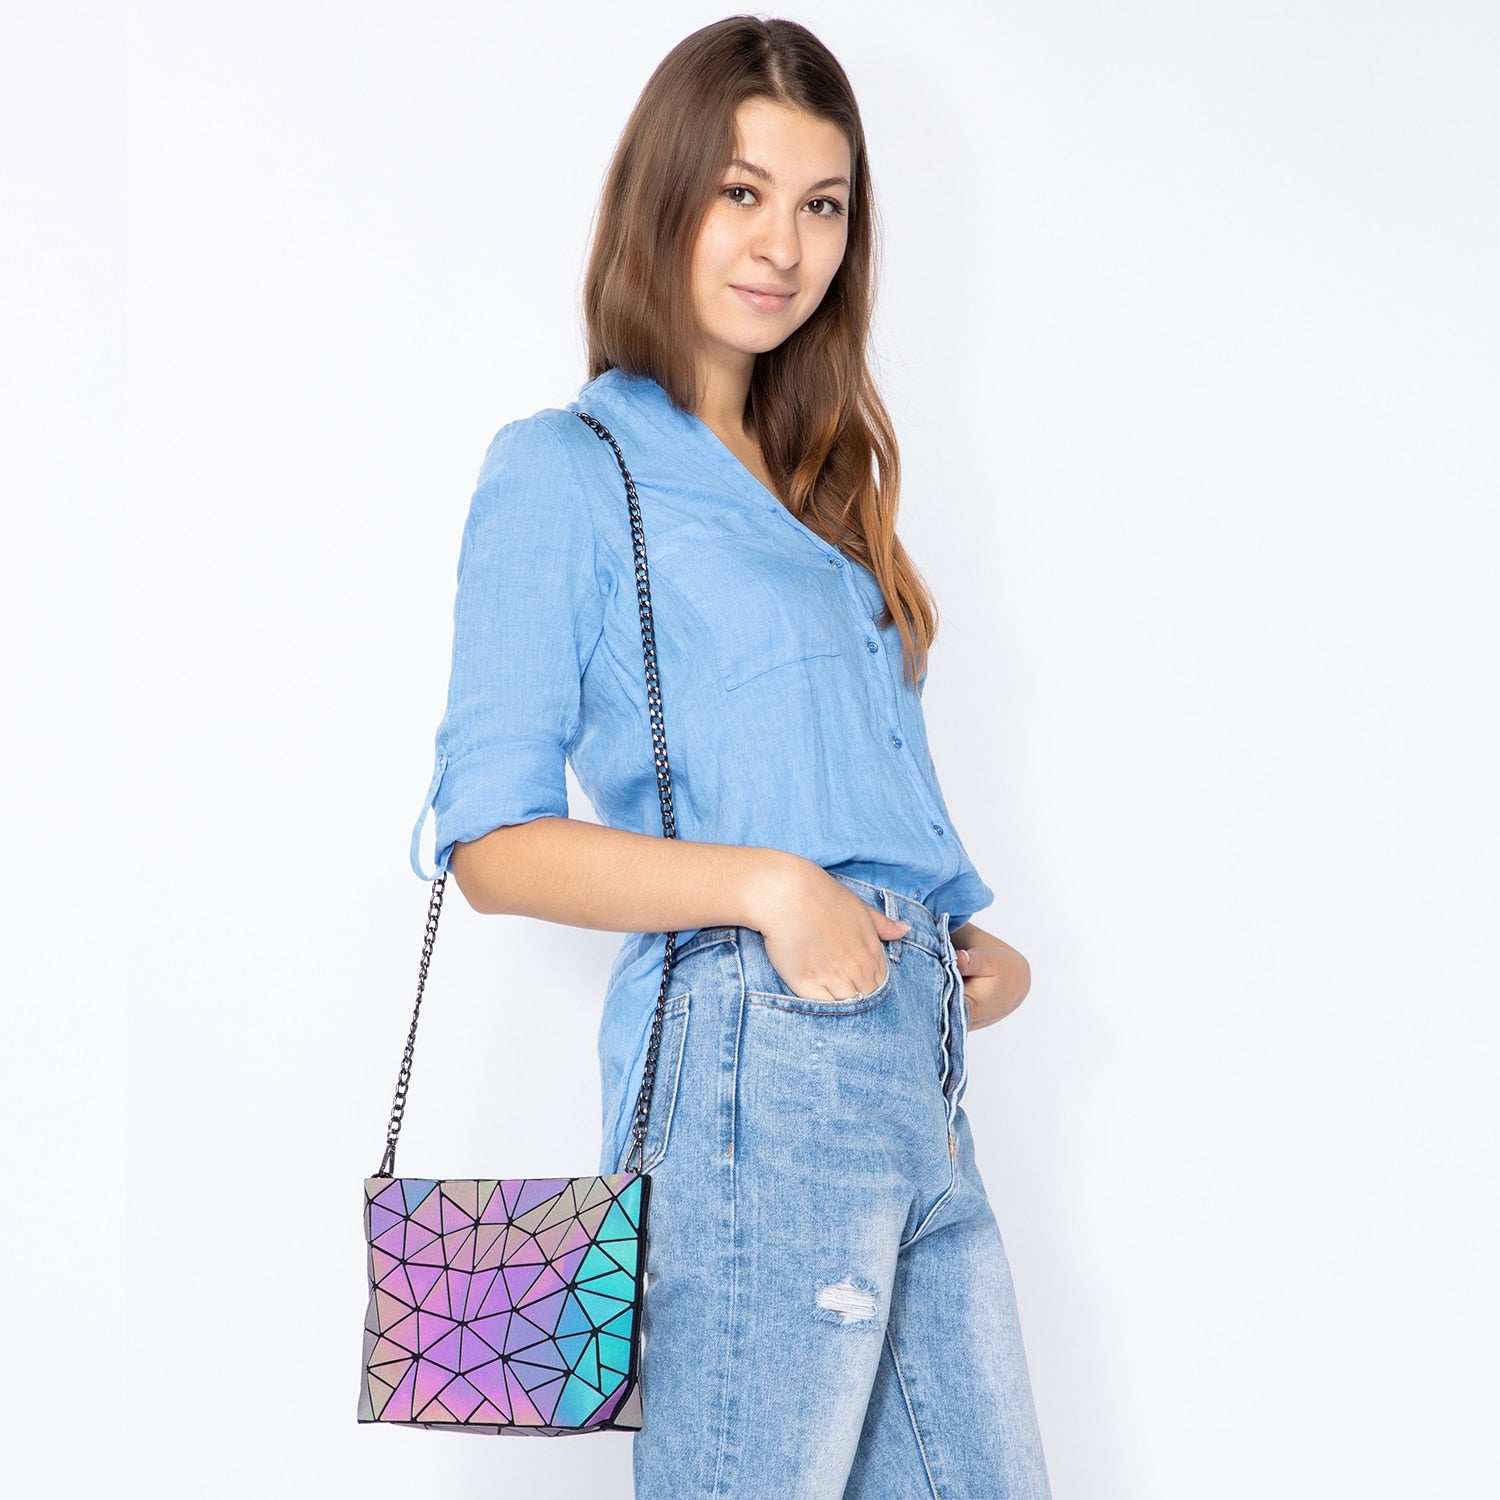 Women wearing Luminous Messenger Bag